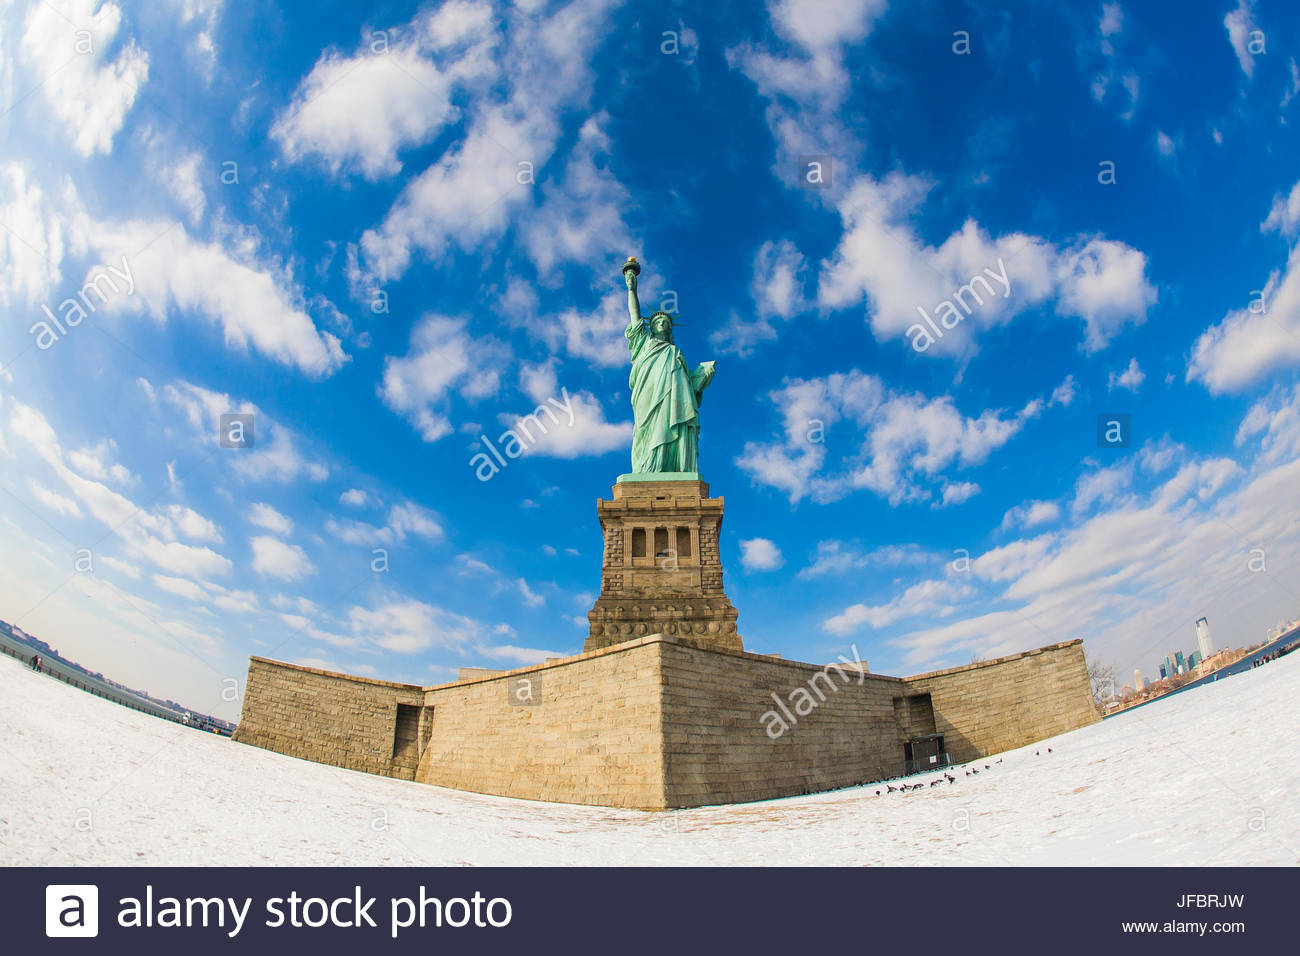 Fisheye lens view of the Statue of Liberty in New York during the winter with snow on the ground and blue skies. - Stock Image